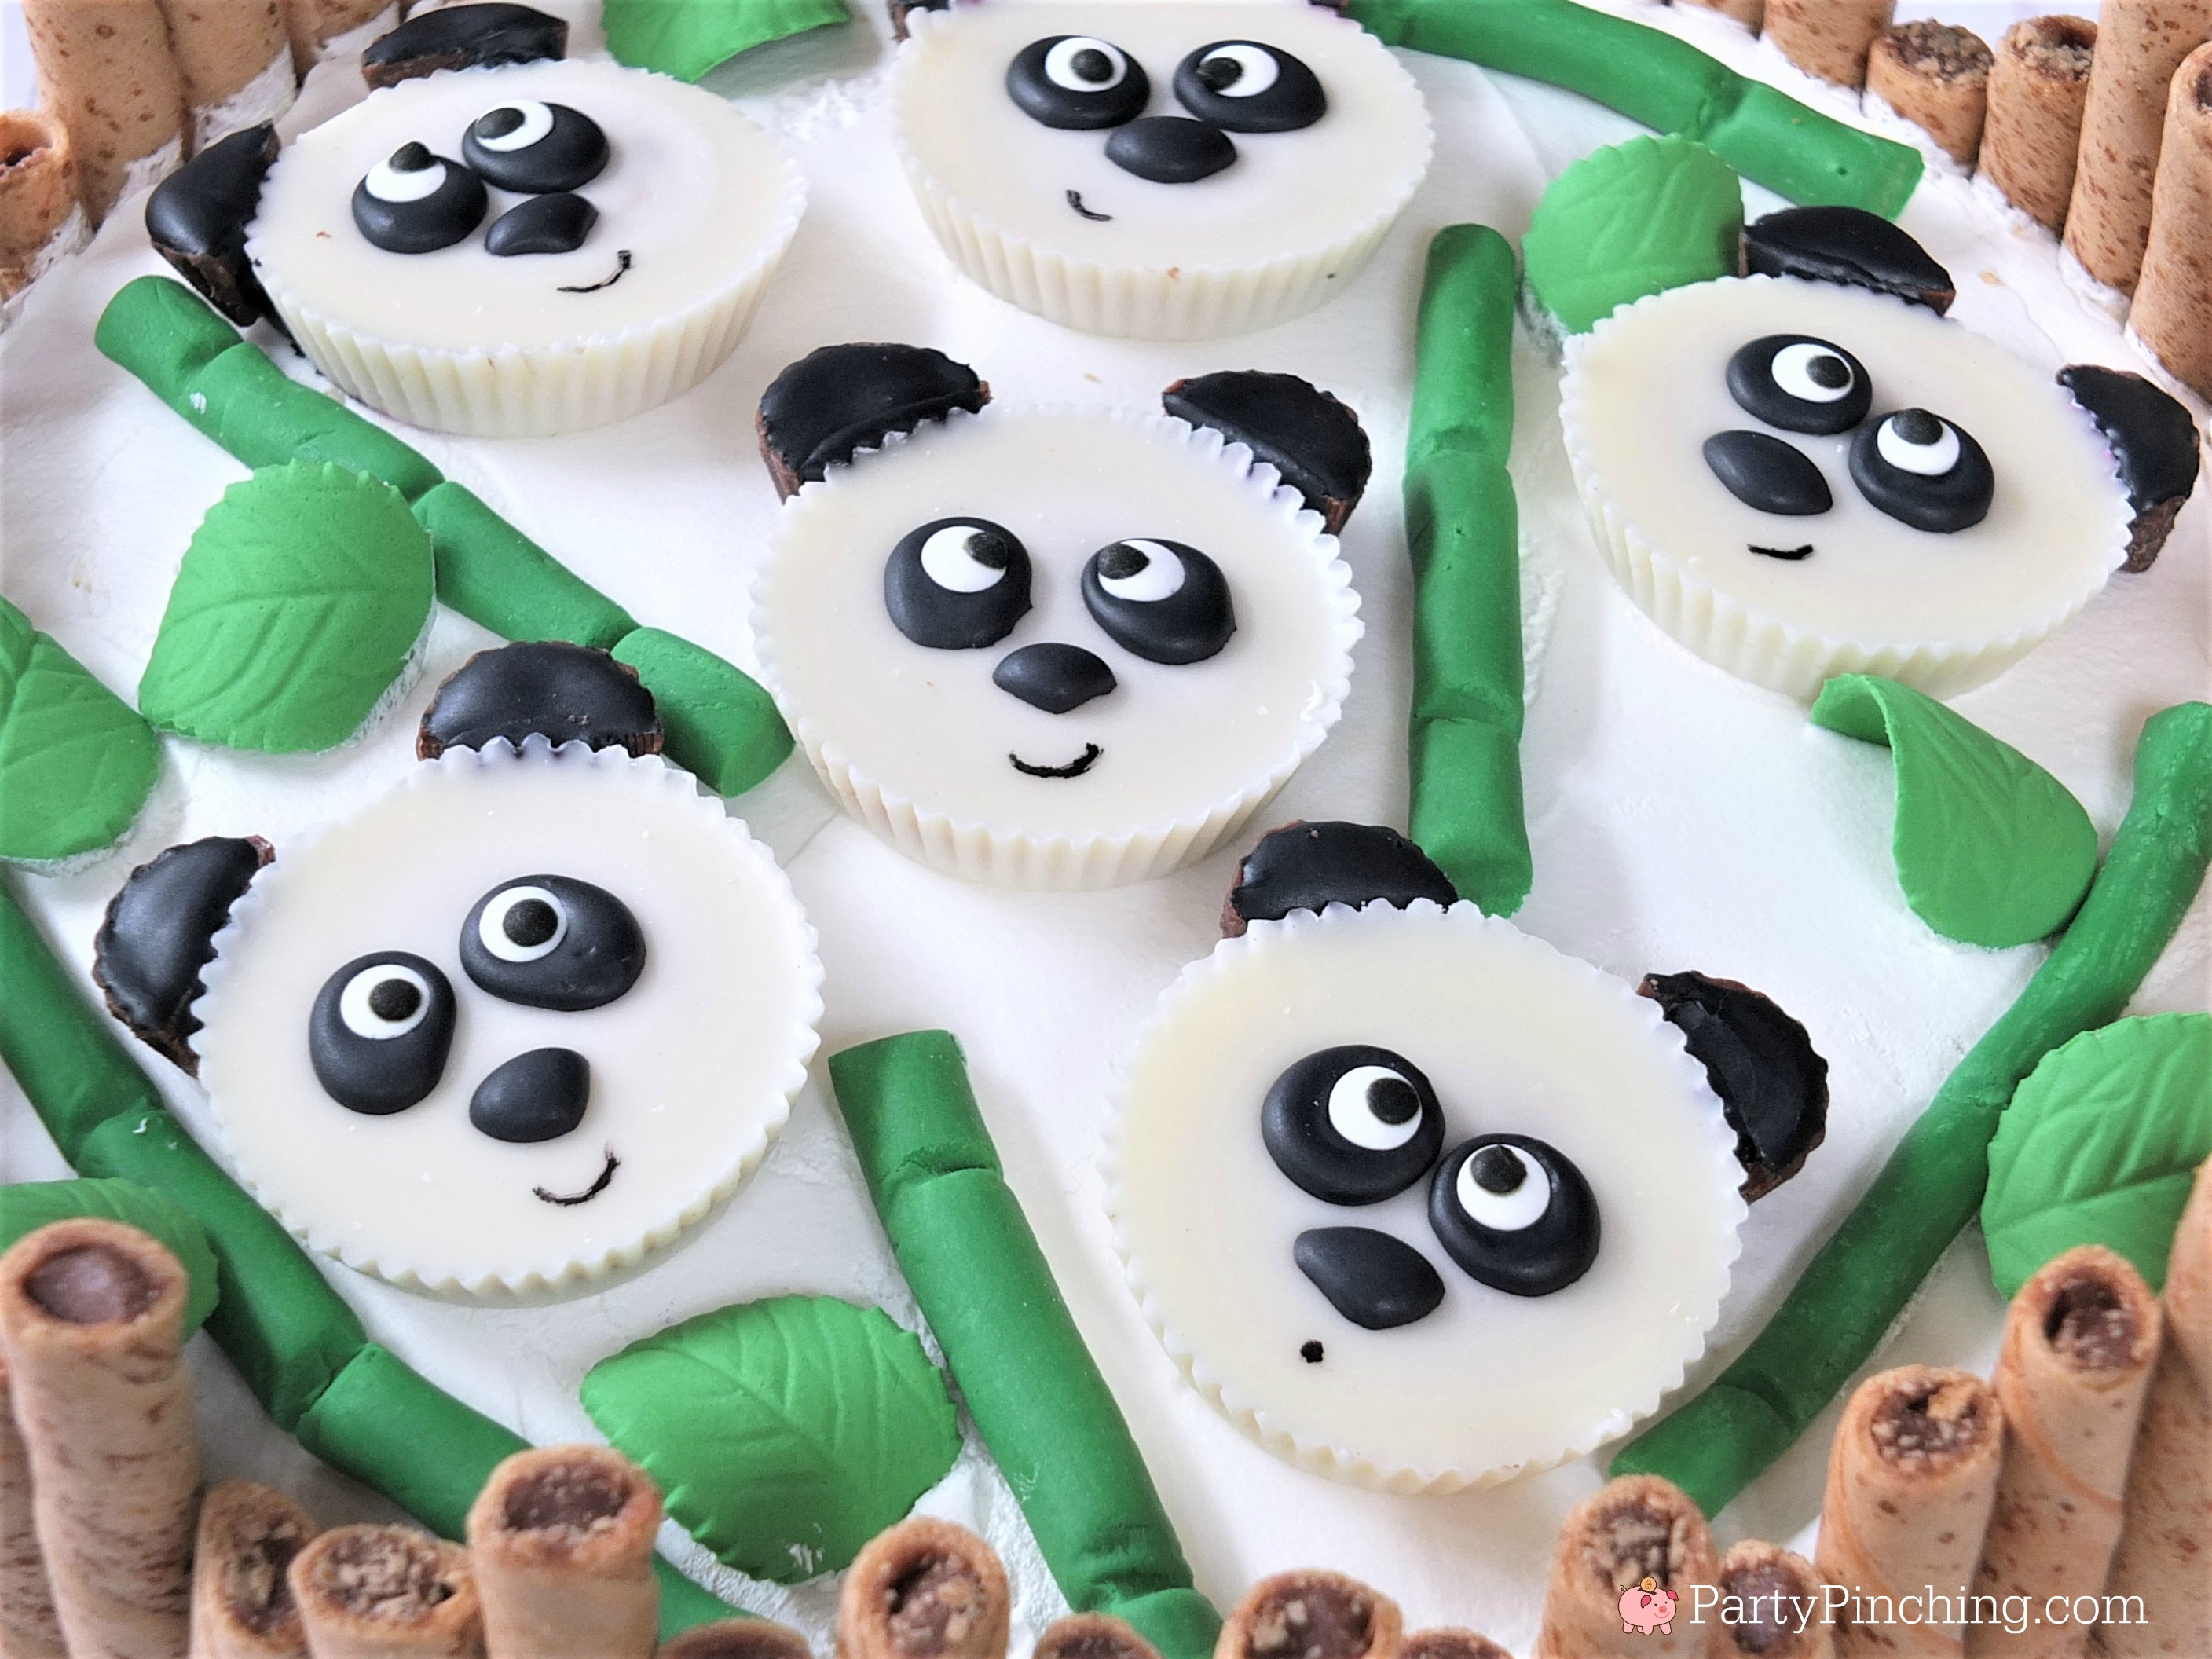 panda peanut butter cups, cute panda cake, panda party ideas, panda treats, panda dessert, panda cupcake, white chocolate Reese's Peanut Butter cups, cute food, fun food for kids, sweet treats, Chinese New Year ideas